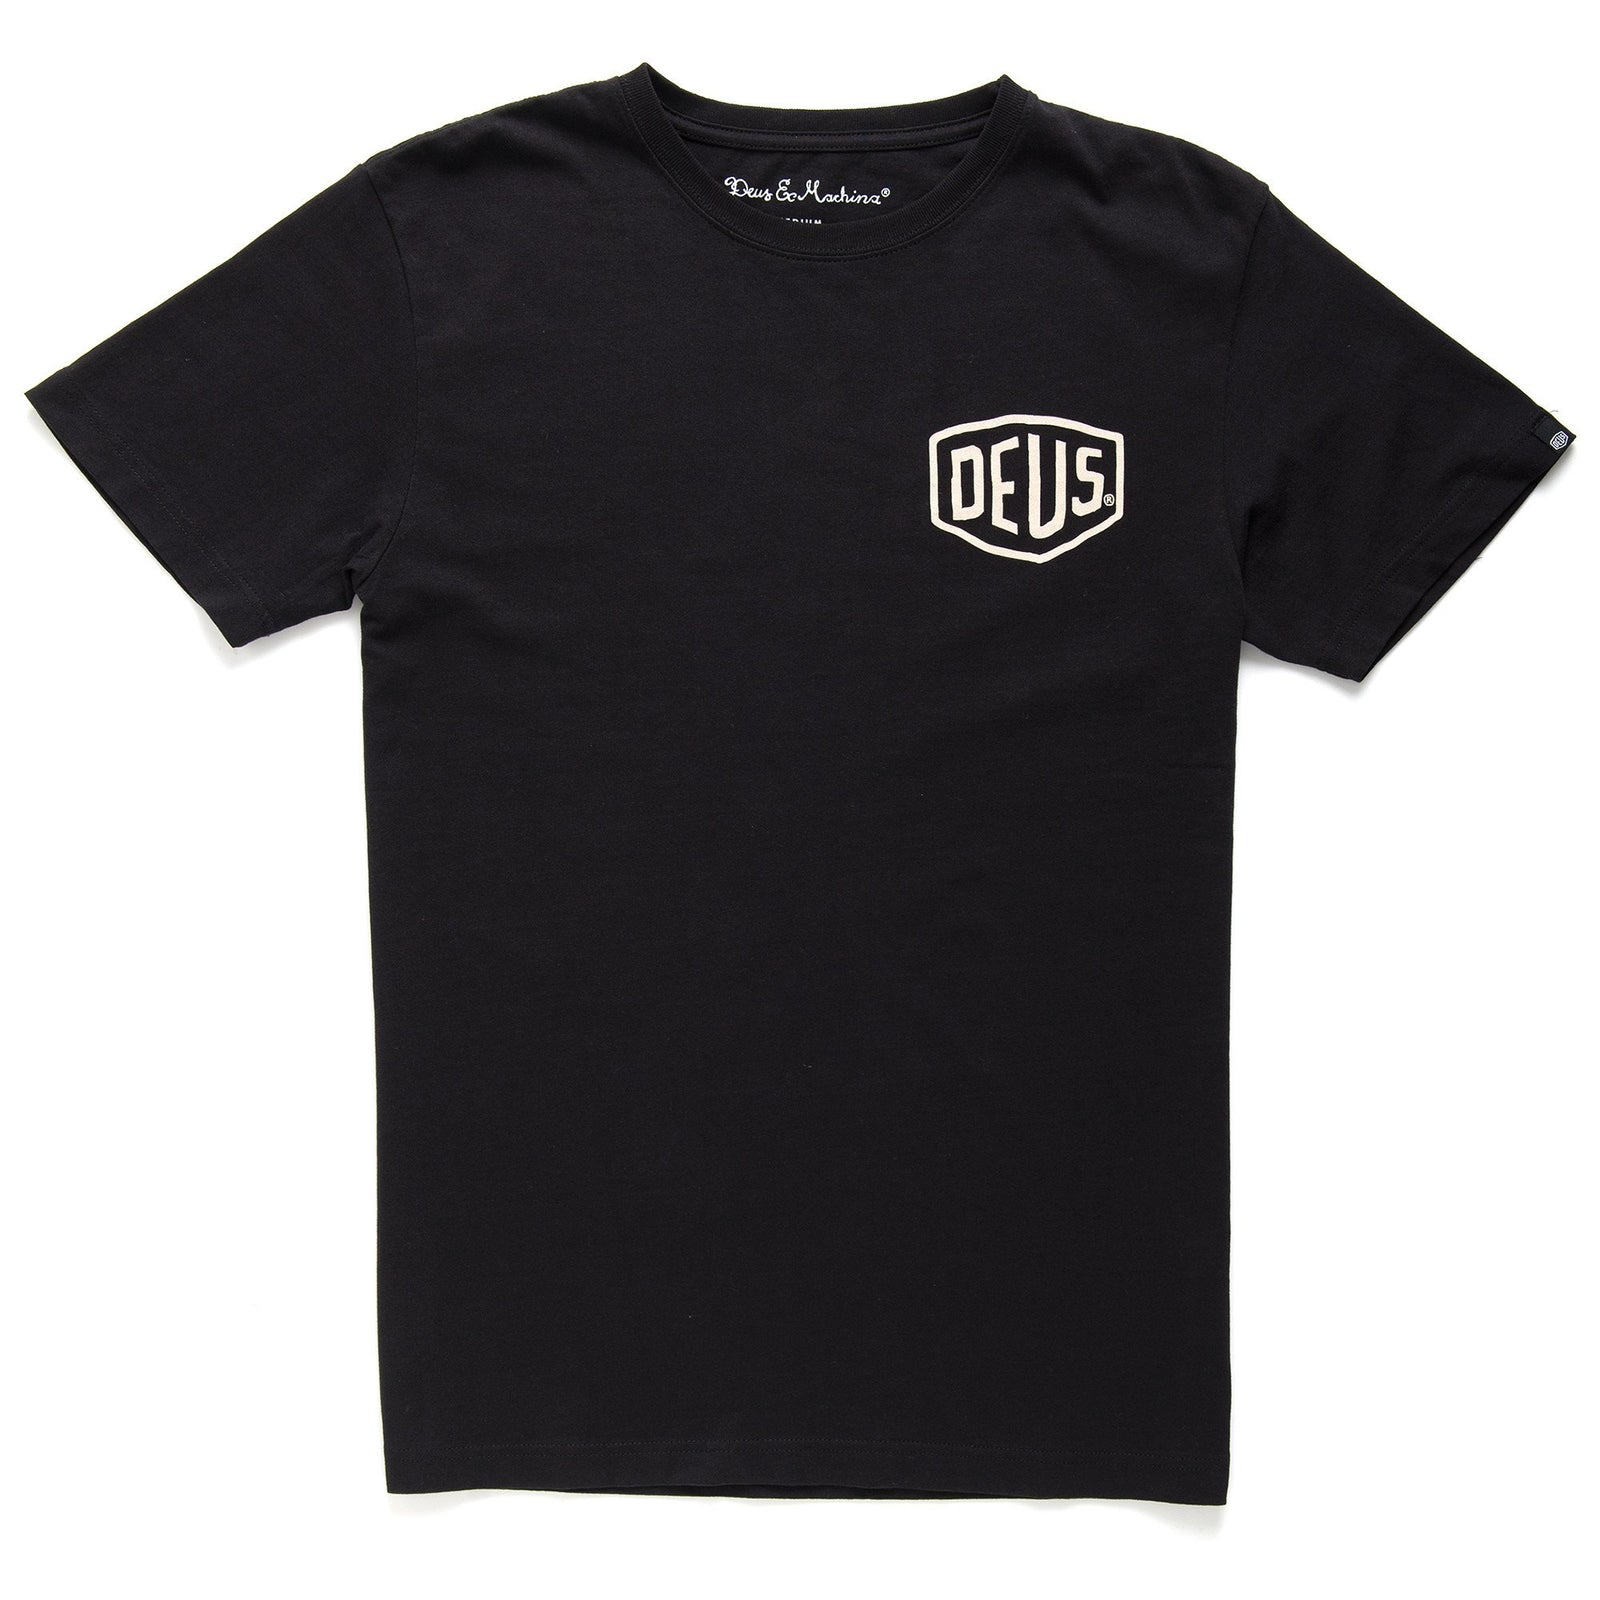 Deus Camperdown Address T-Shirt - Black